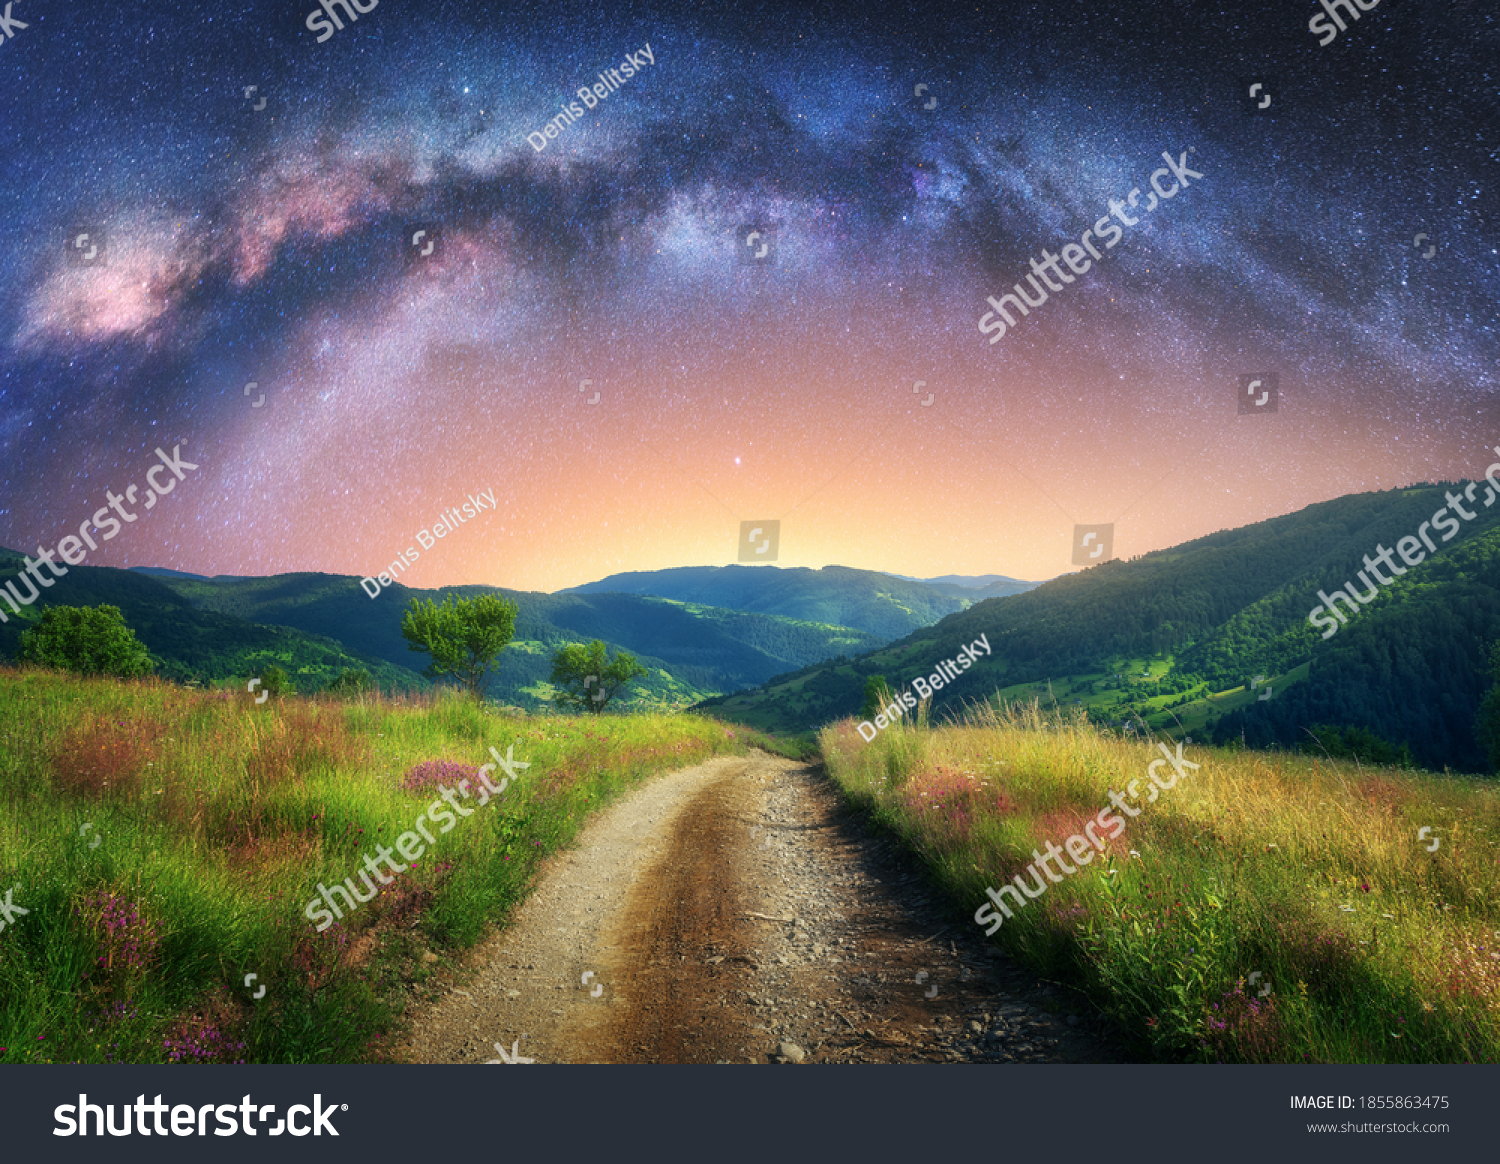 Arched Milky Way over the mountain dirt road in summer. Beautiful night landscape with starry sky, milky way arch, trail in mountain village, hills, green grass and purple flowers. Space and galaxy #1855863475